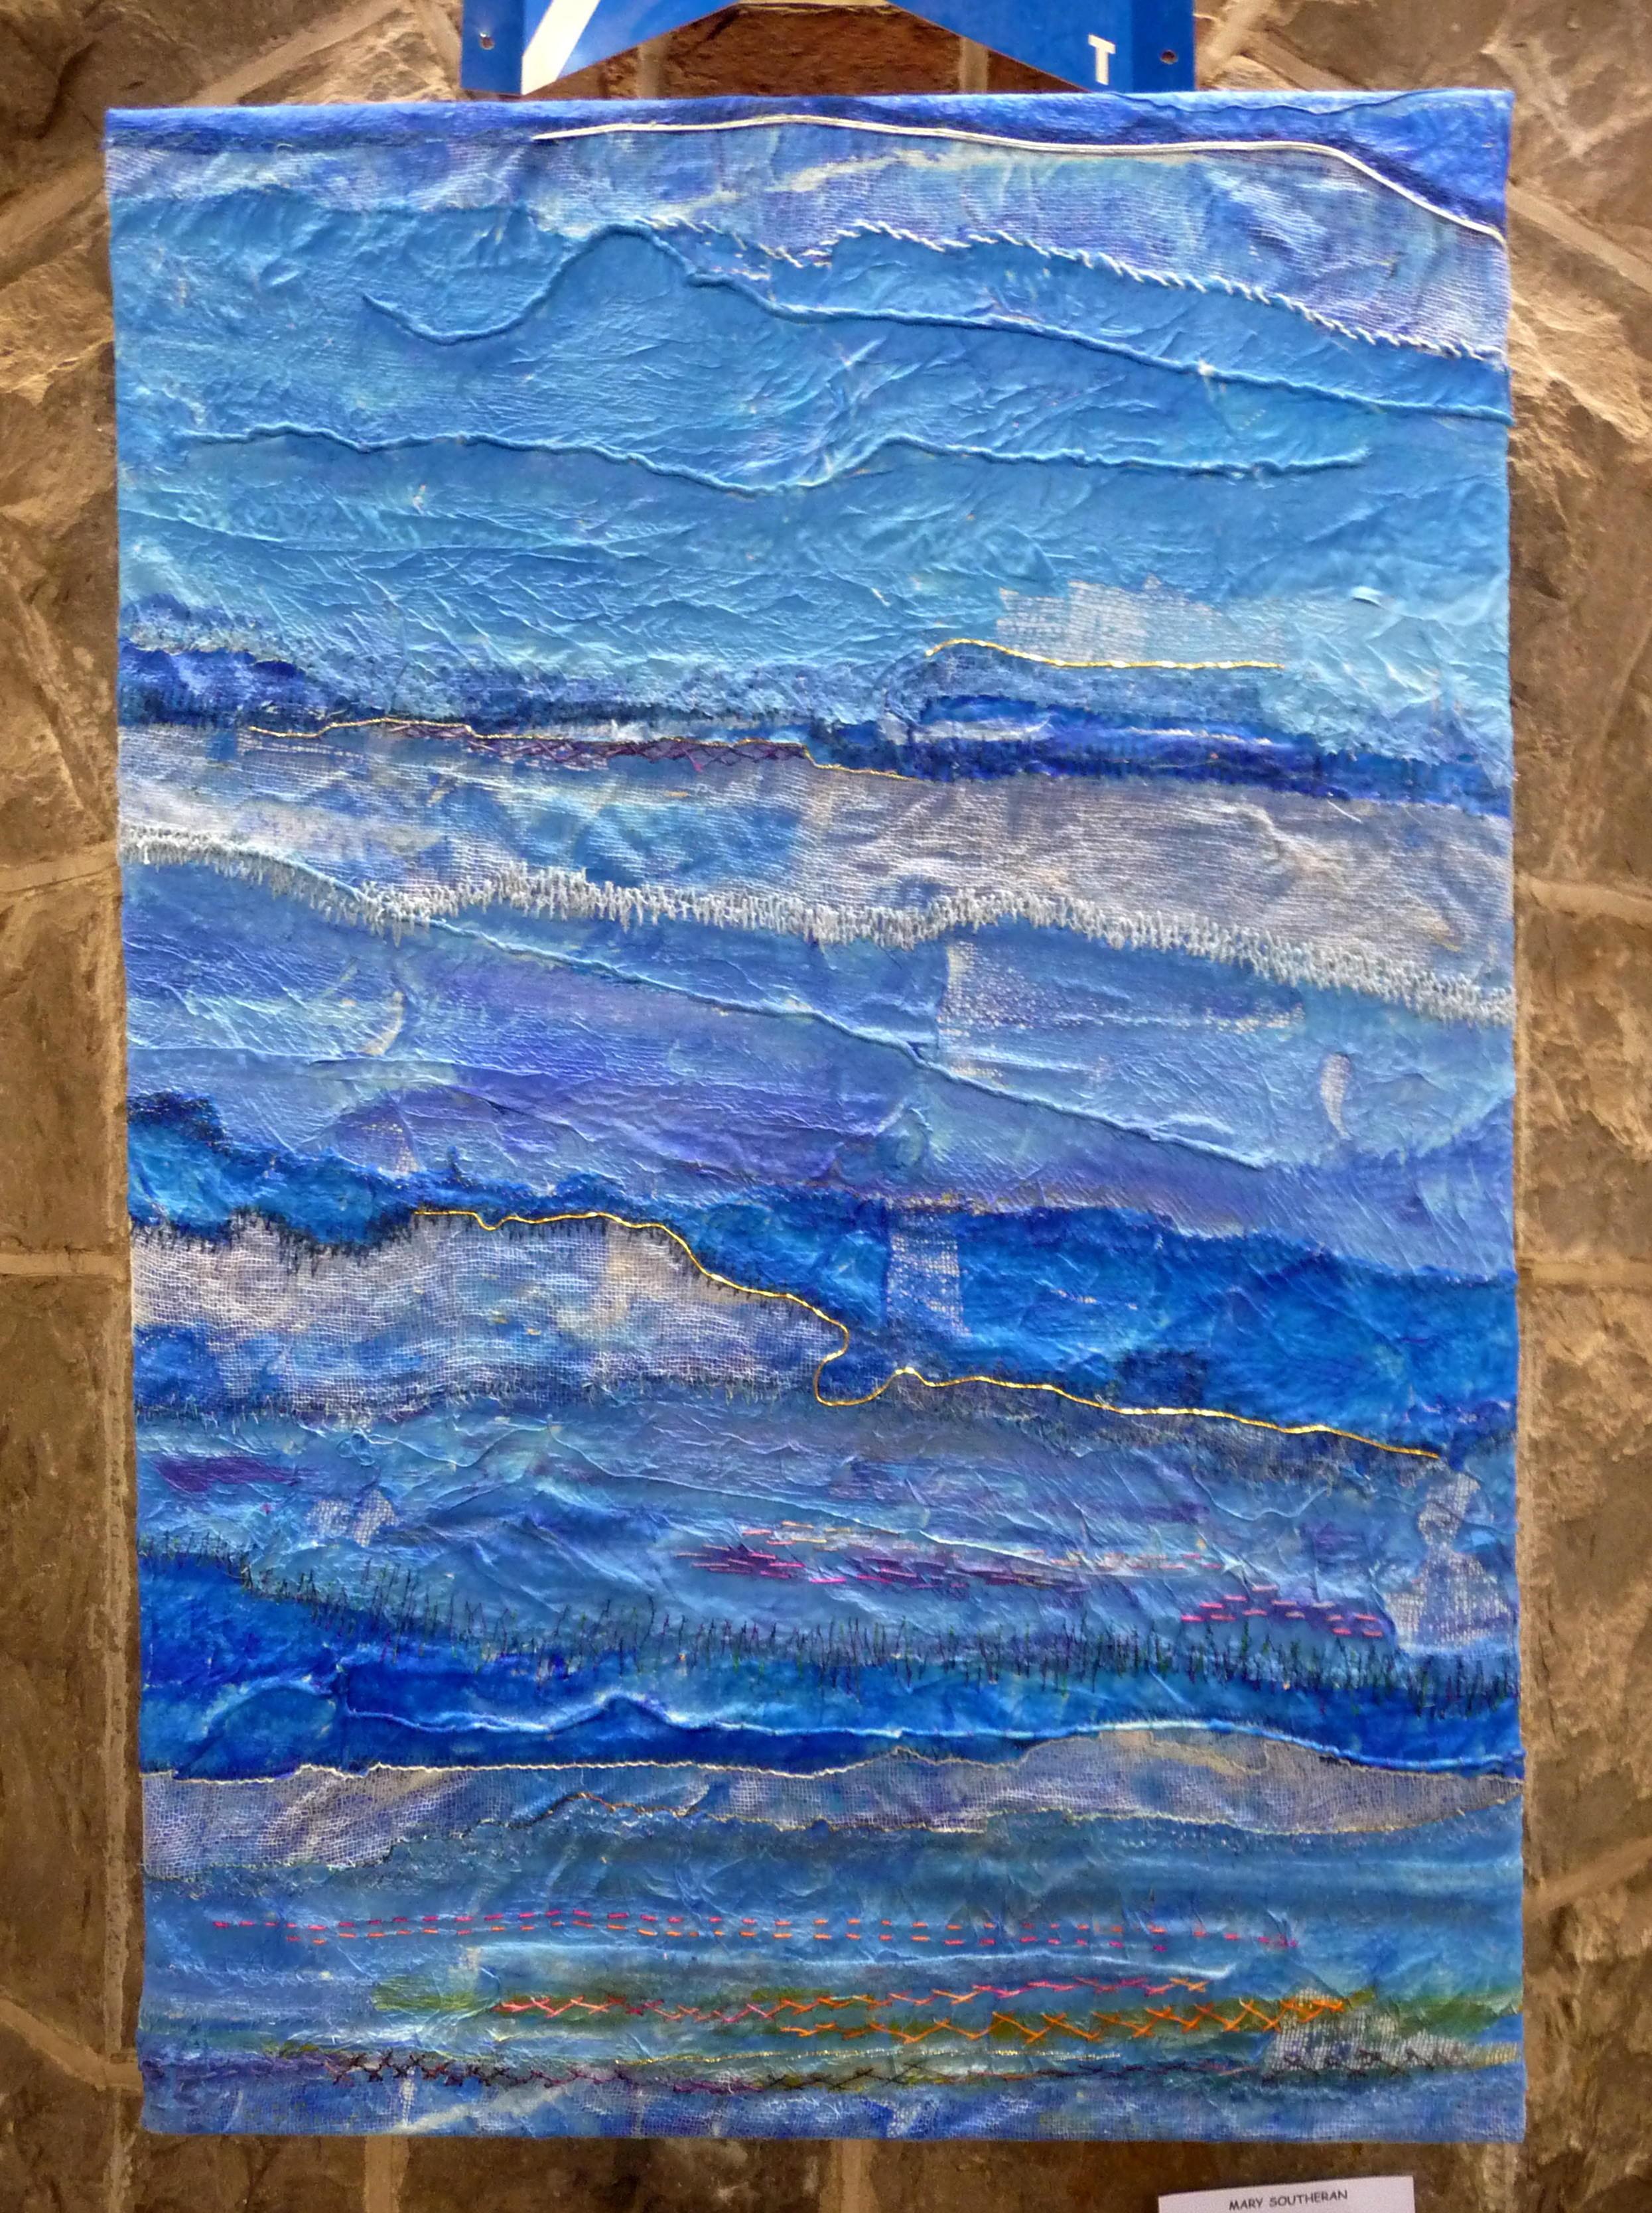 BLUE SKIES by Mary Southern, hand and machine embroidered painted scrim